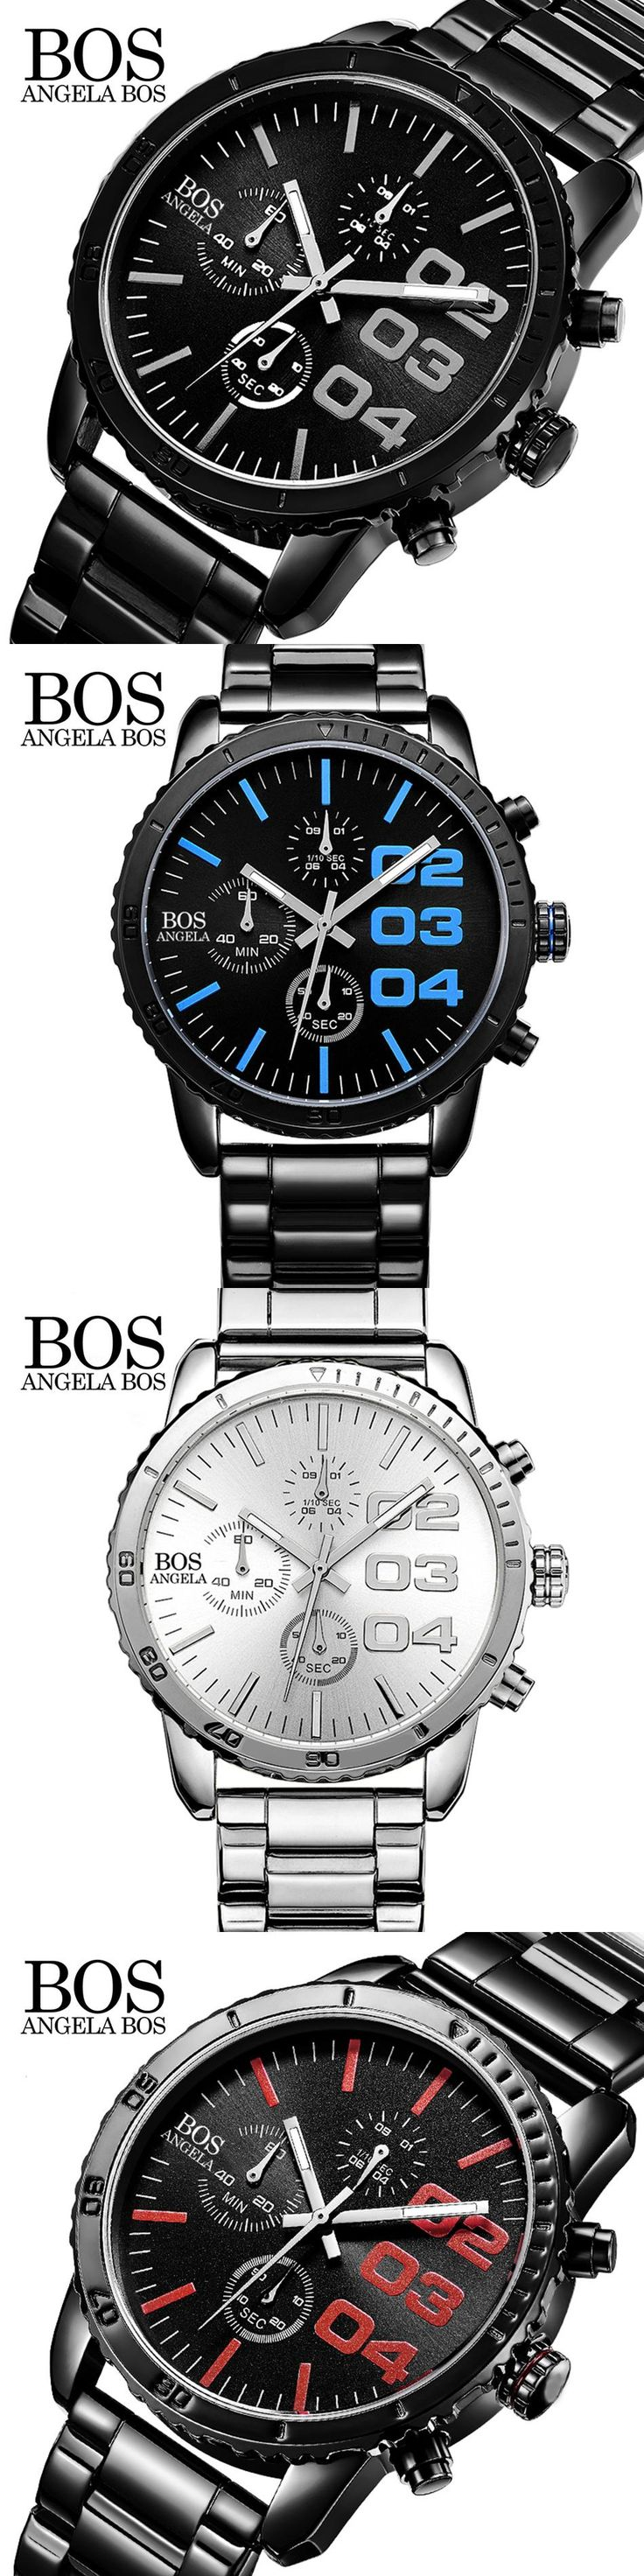 ANGELA BOS Sport Watches For Men Chronograph Stop Watch Stainless Steel Cool Luxury Watch Men Famous Brand Quartz Men's Watches